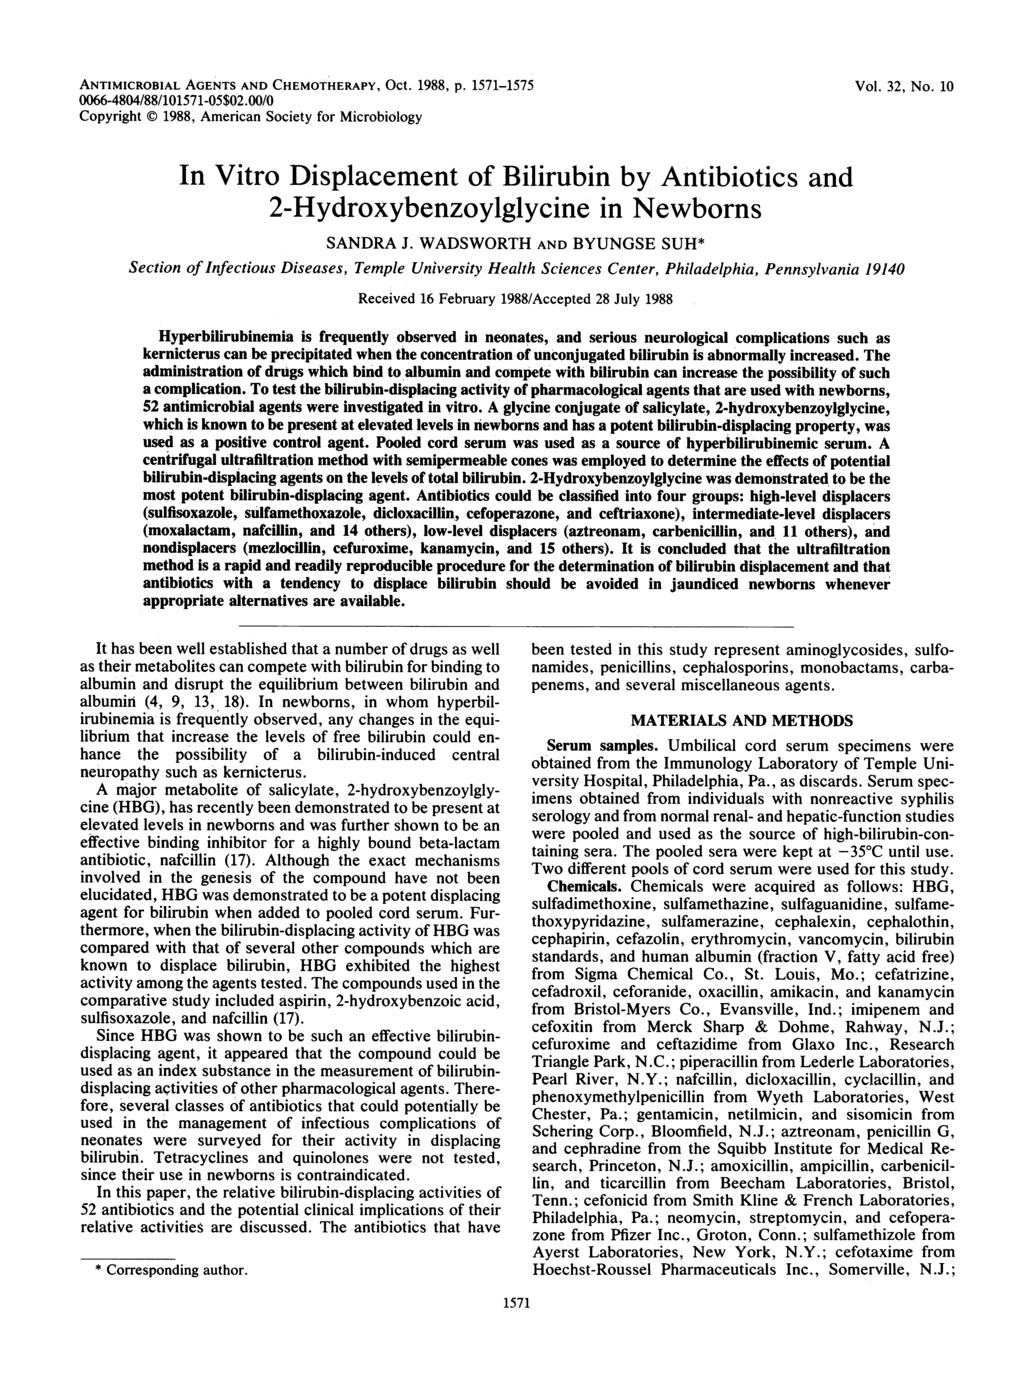 ANTIMICROBIAL AGENTS AND CHEMOTHERAPY, Oct. 1988, p. 1571-1575 66-484/88/11571-5$2./ Copyright 1988, American Society for Microbiology Vol. 32, No.